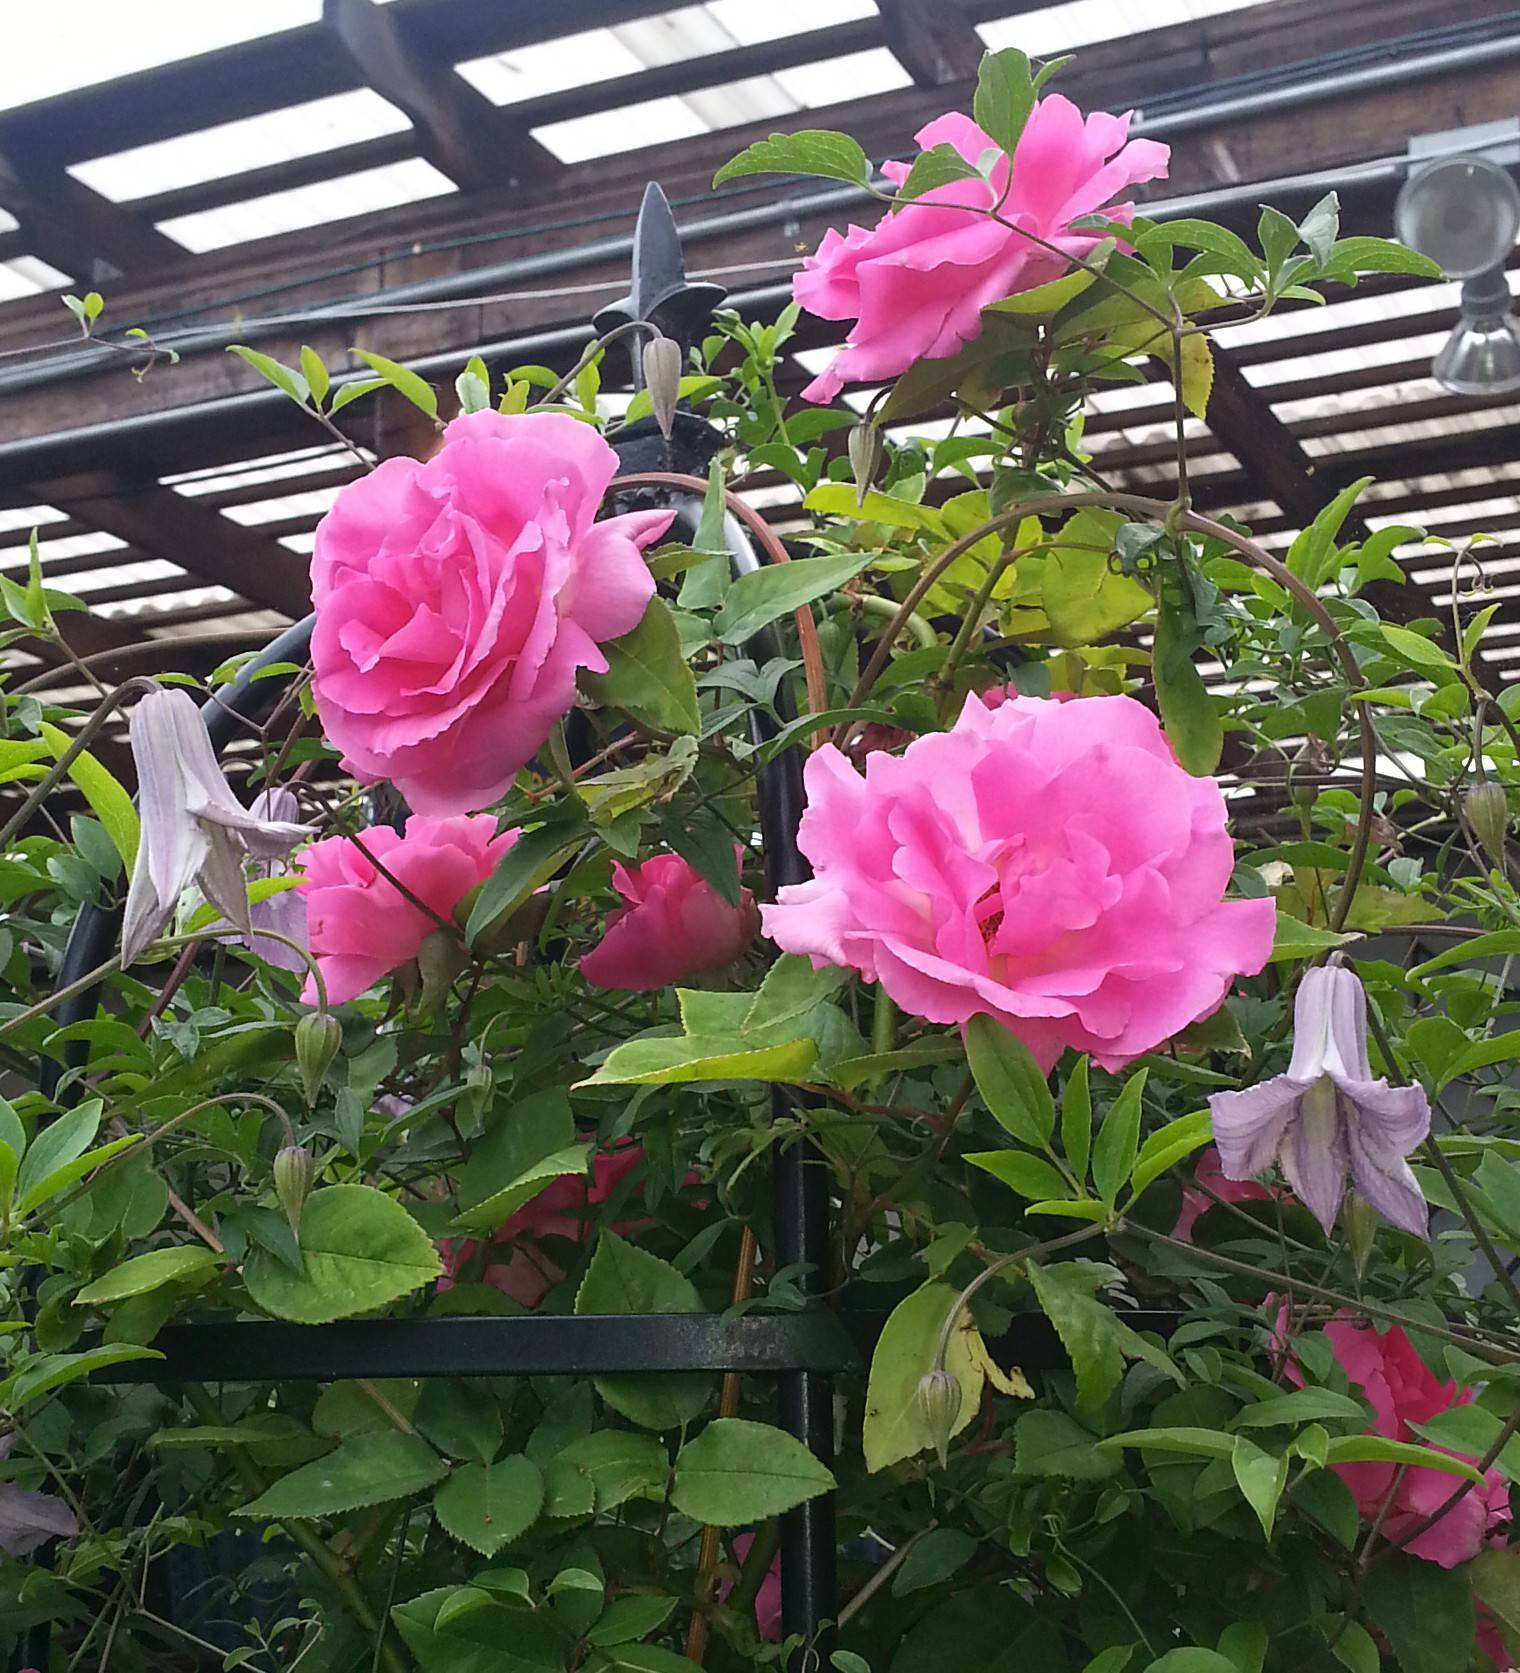 Disease-resistant antiques roses, like these Zephirine Droughin, also known as bourbon roses, will be among the rare varieties brought by Gethsemane Garden Center.